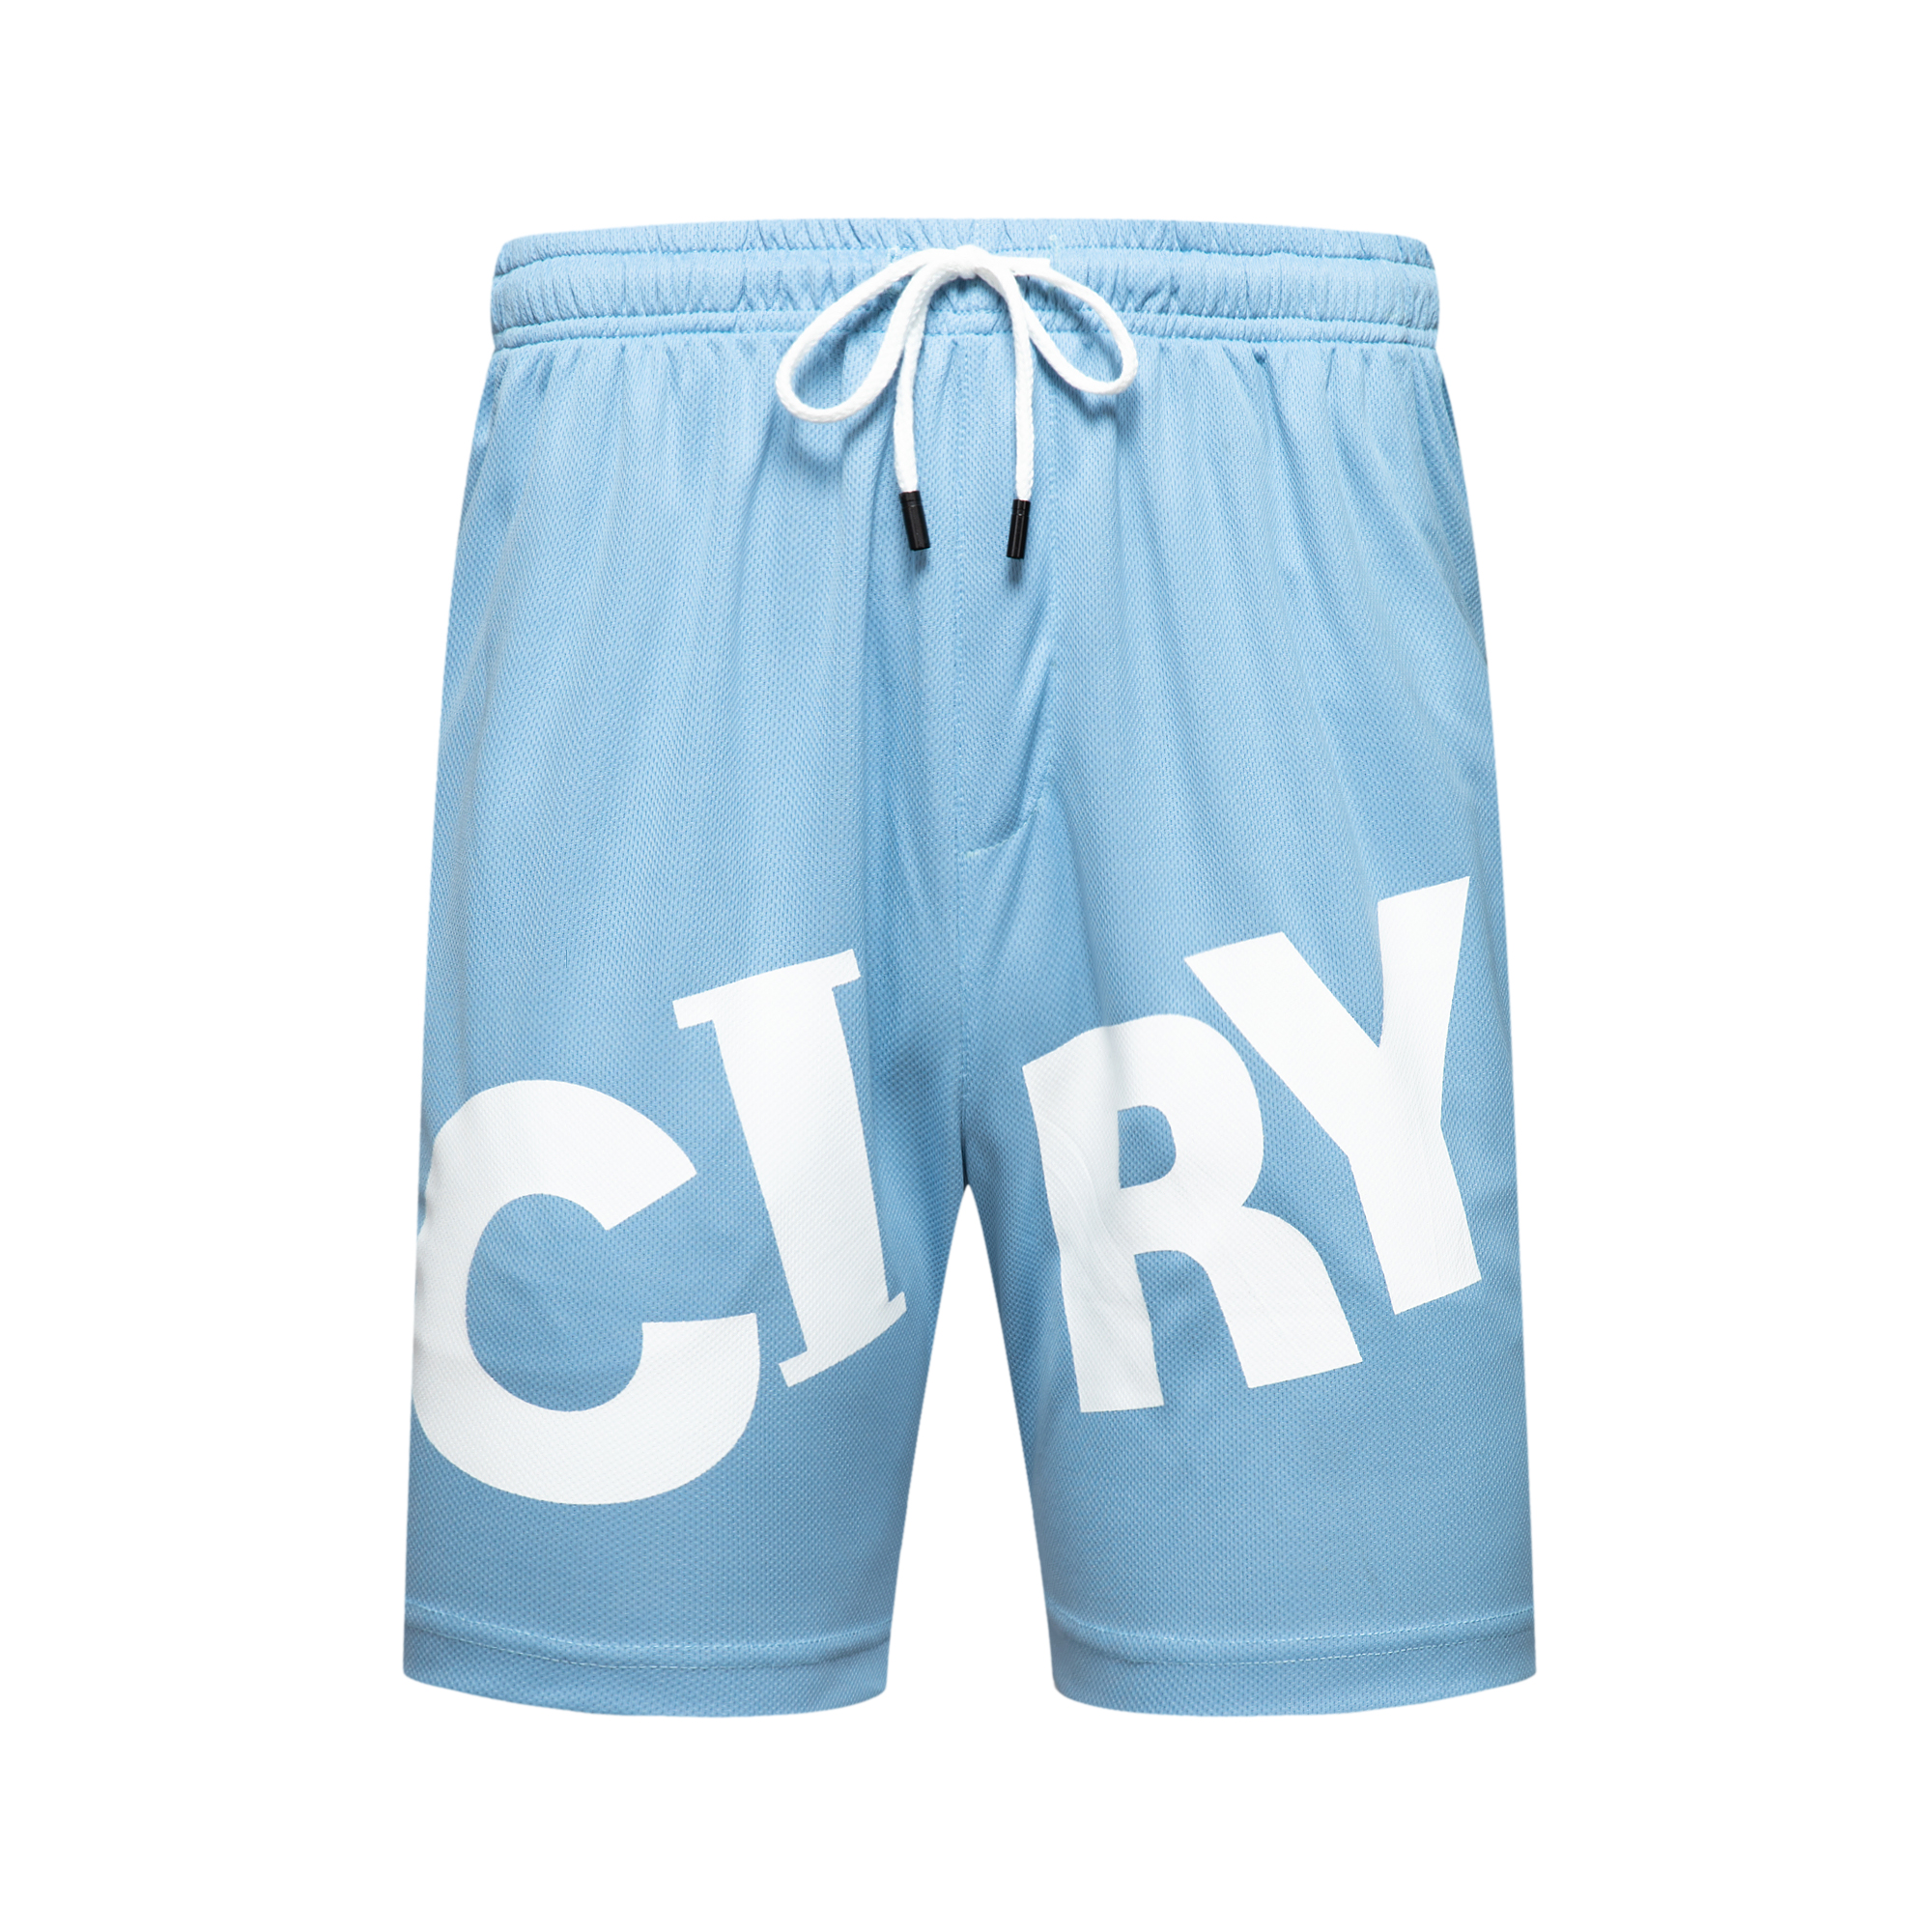 US/Euro Hot Sale Men's Shorts Summer Casual Beach Shorts Mens Bodybuiding Male Pants Slim Fit Shorts Fitness Clothing Size S-2XL